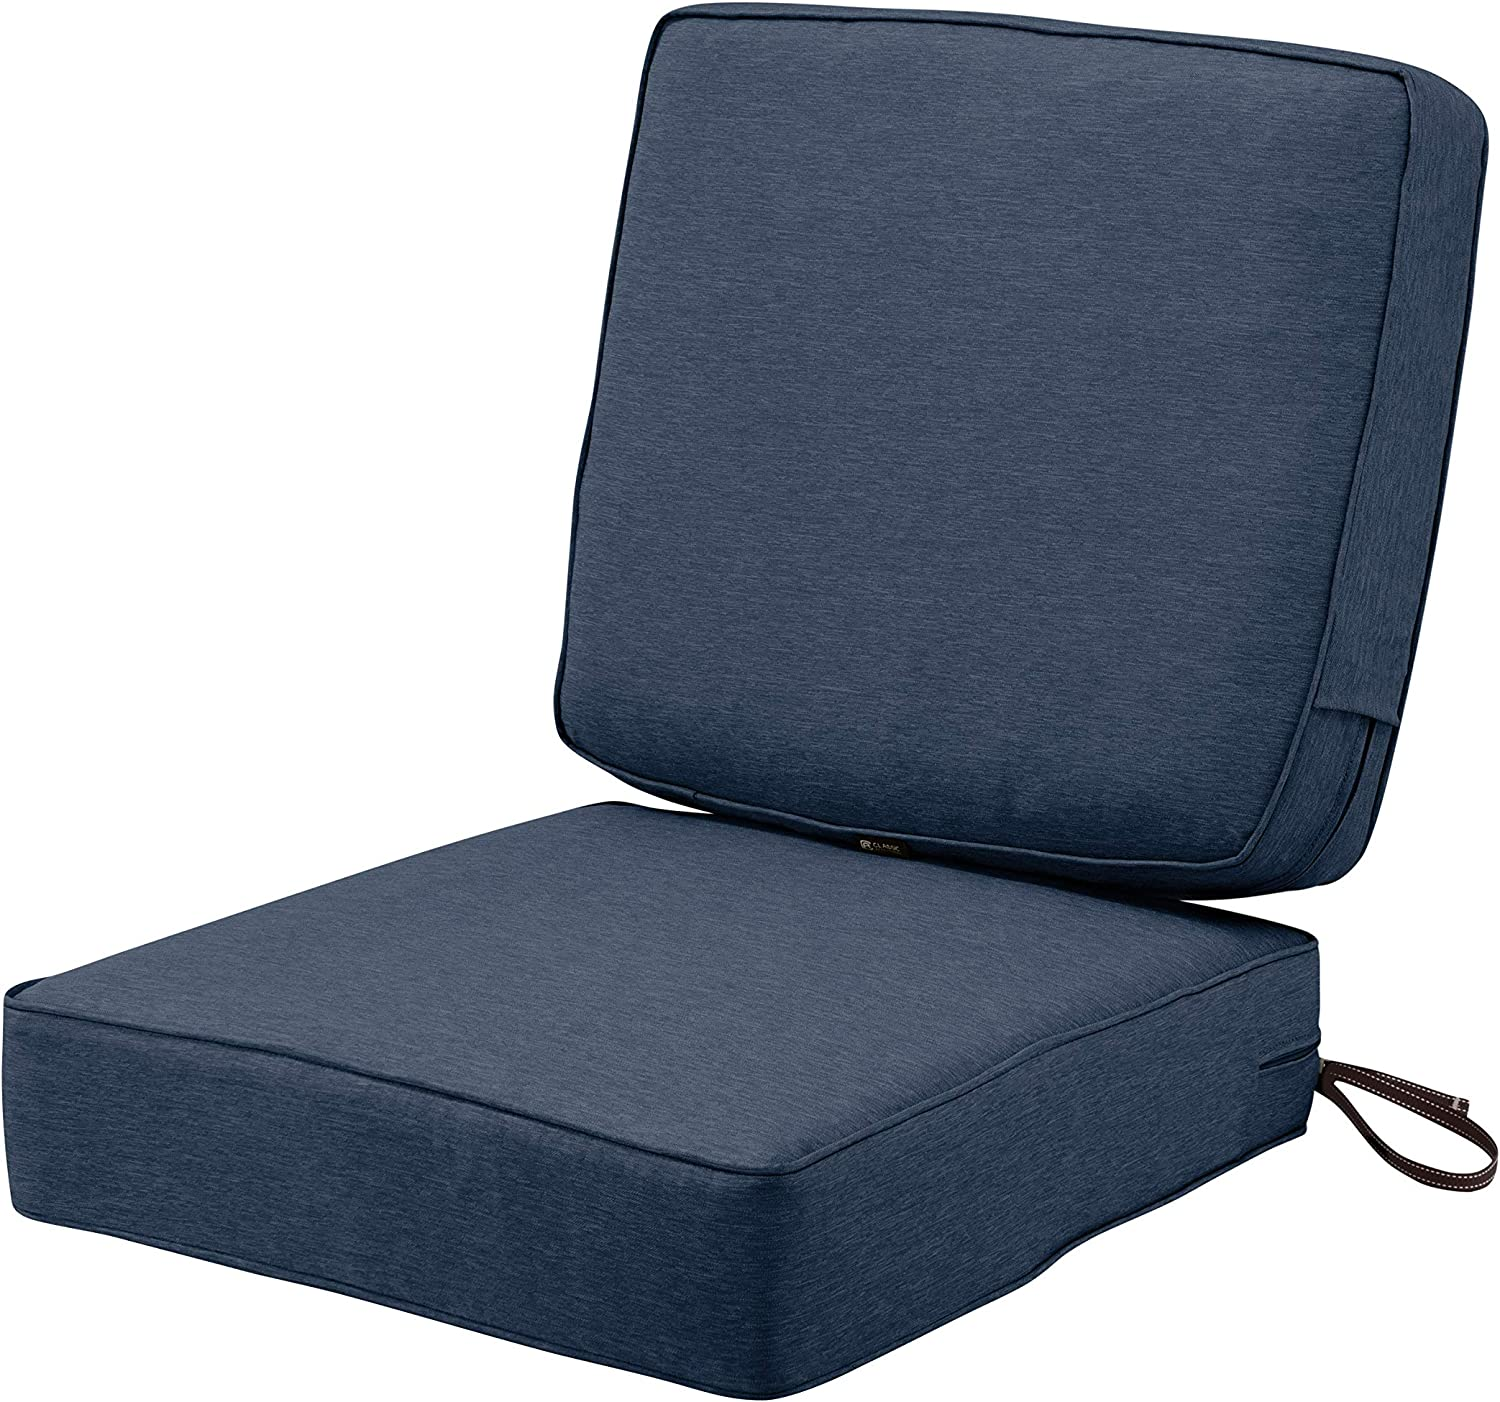 Classic Accessories Montlake Water-Resistant 25 x 25 x 5 Inch (seat)/25 x 22 x 4 Inch (back) Patio Cushion Set, Heather Indigo Blue